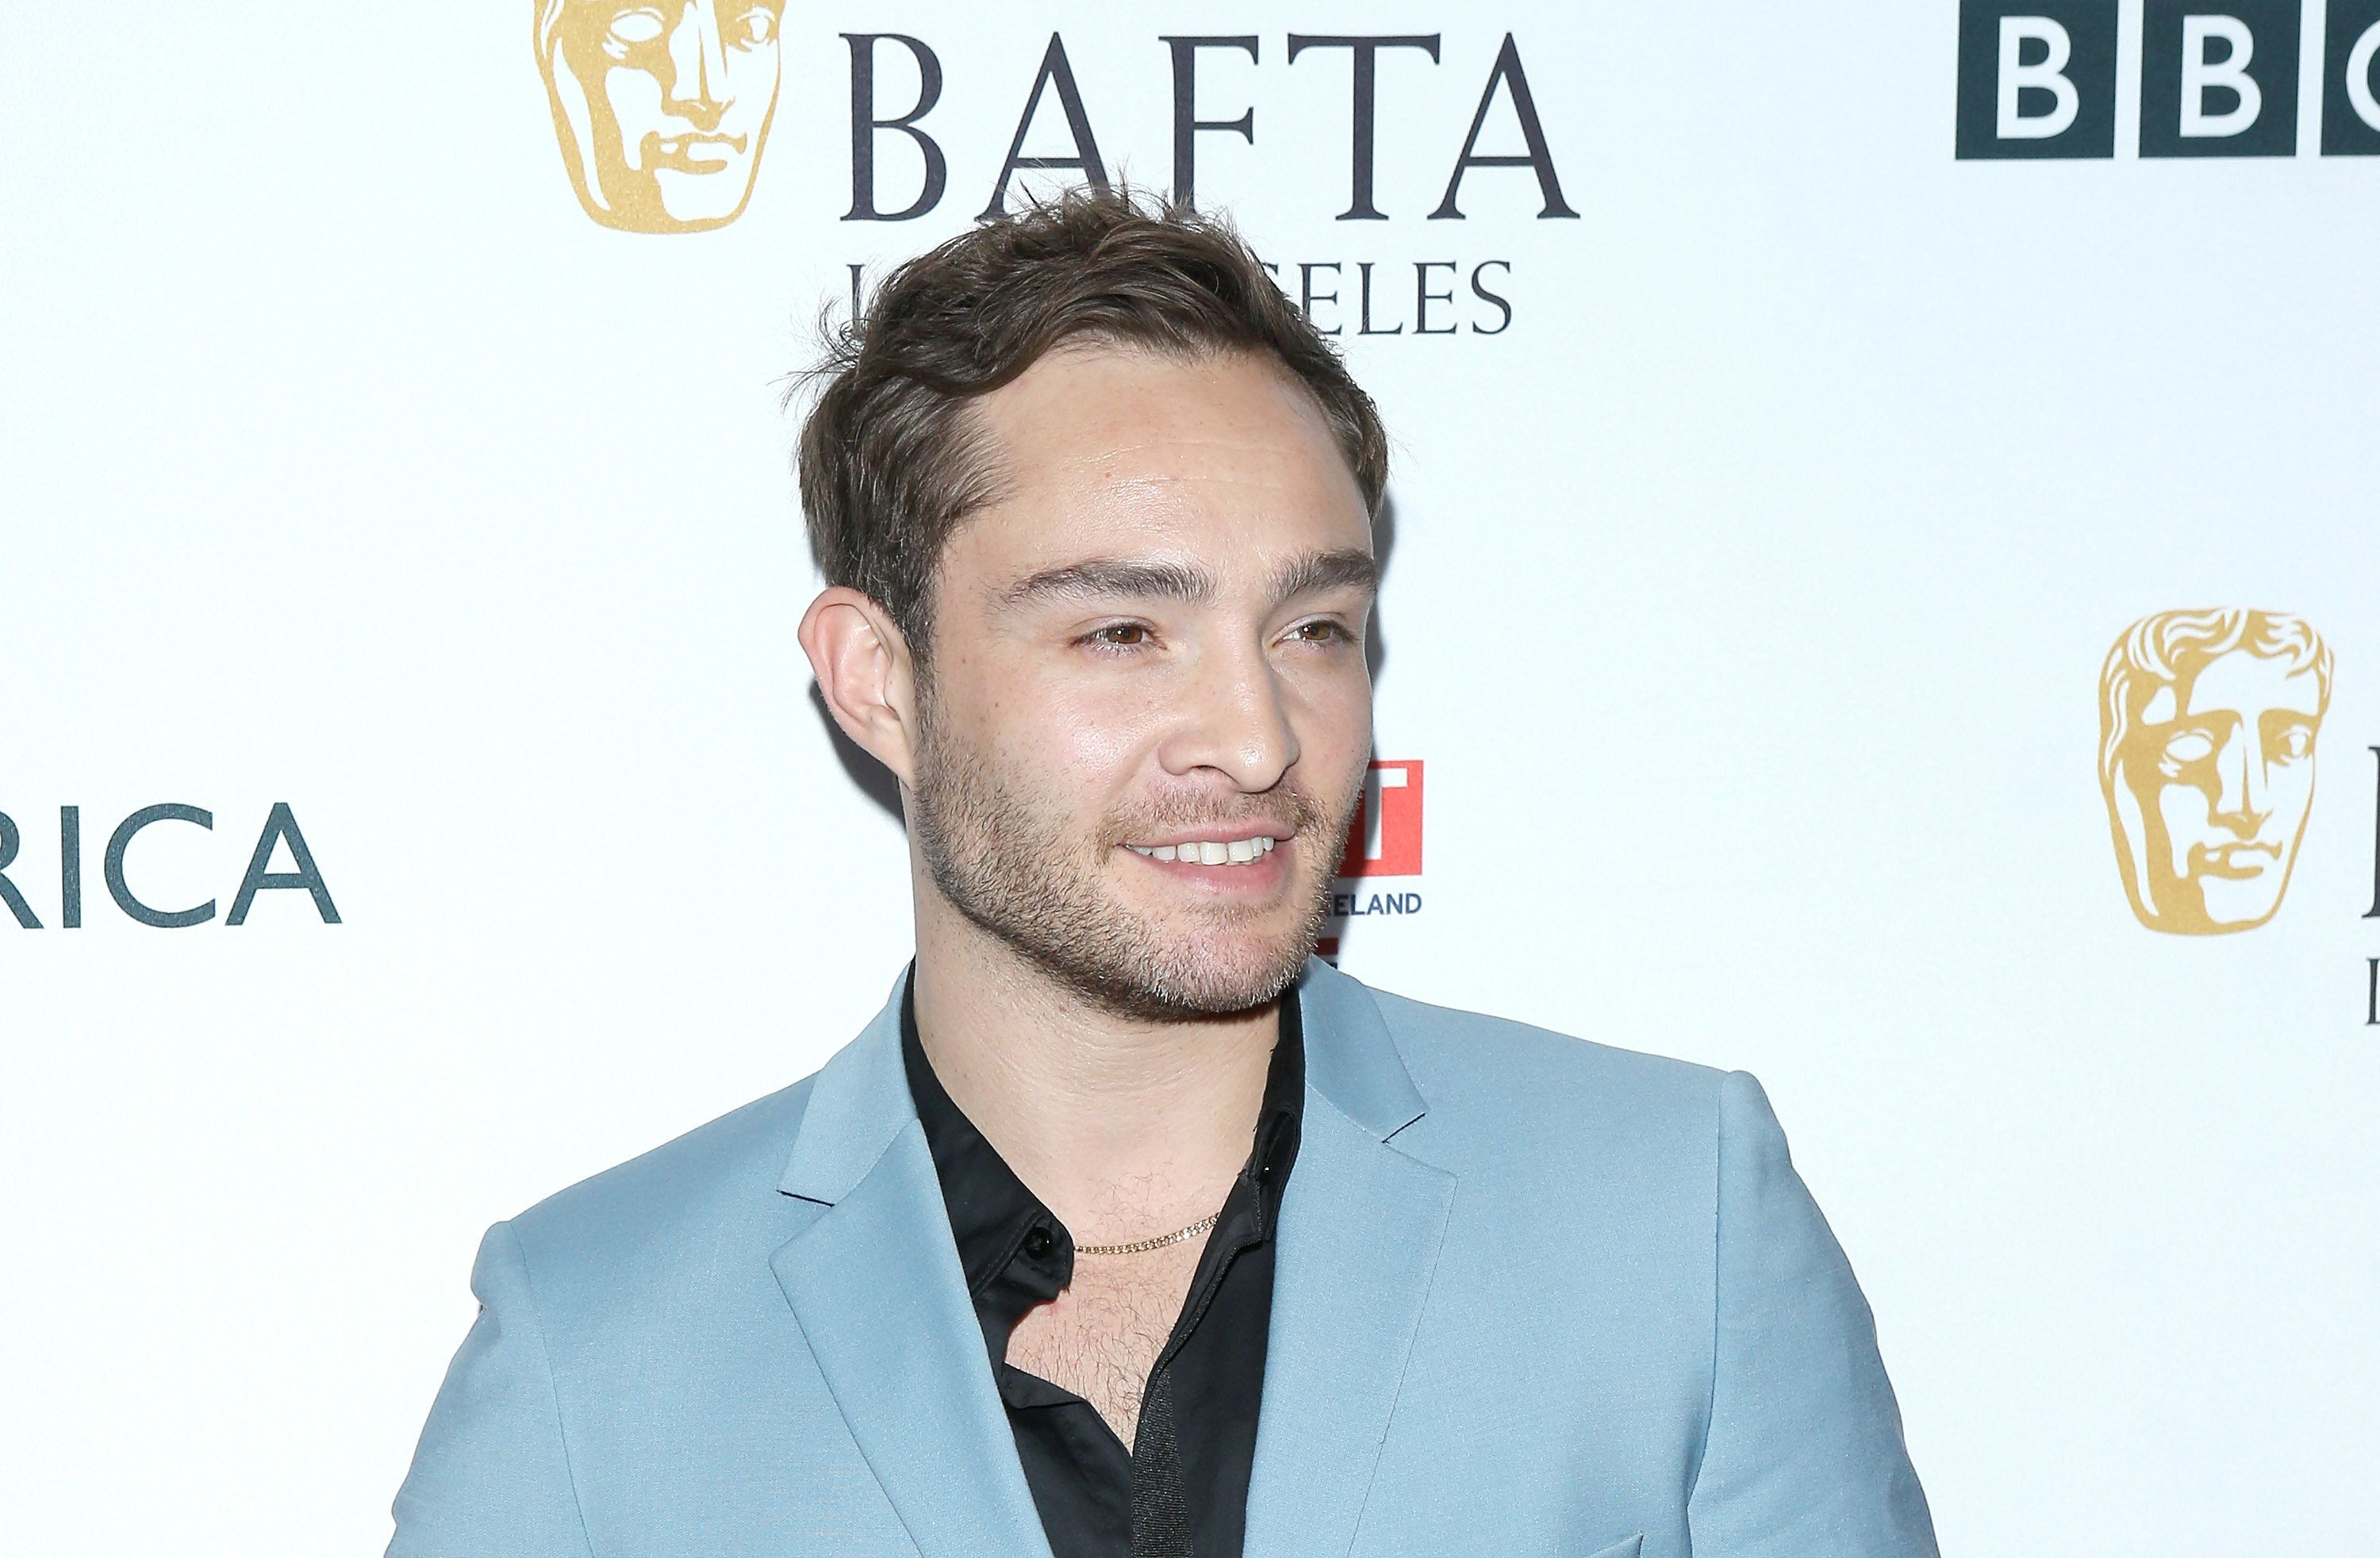 BEVERLY HILLS, CA - SEPTEMBER 16:  Ed Westwick arrives to the BBC America BAFTA Los Angeles TV Tea Party 2017 held at The Beverly Hilton Hotel on September 16, 2017 in Beverly Hills, California.  (Photo by Michael Tran/FilmMagic)